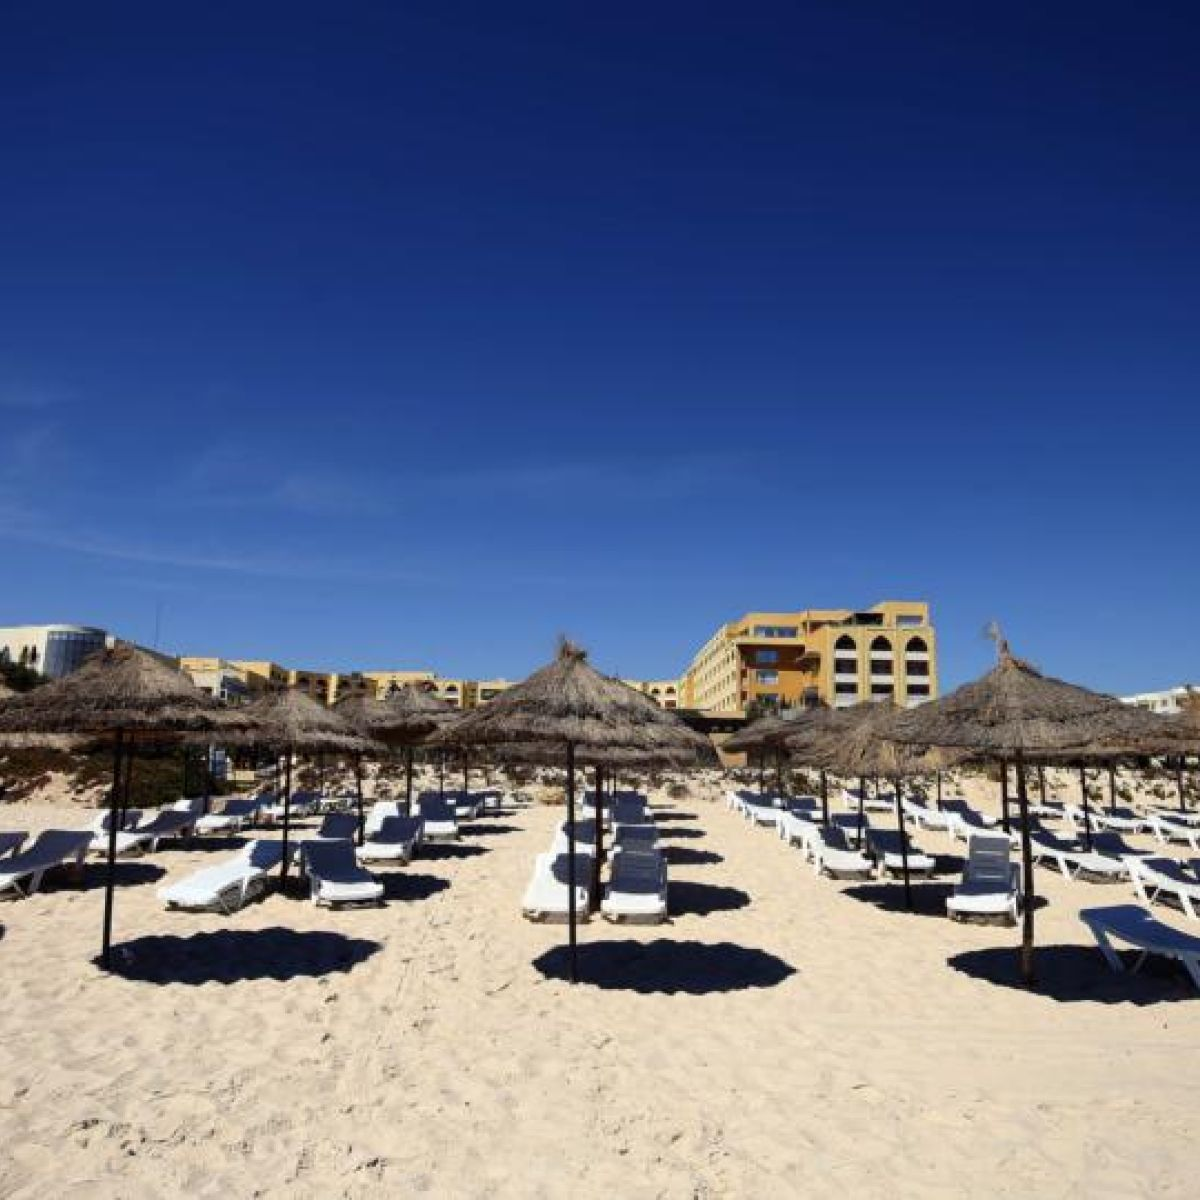 Sousse Letter: Locals ponder attack's effects on their future